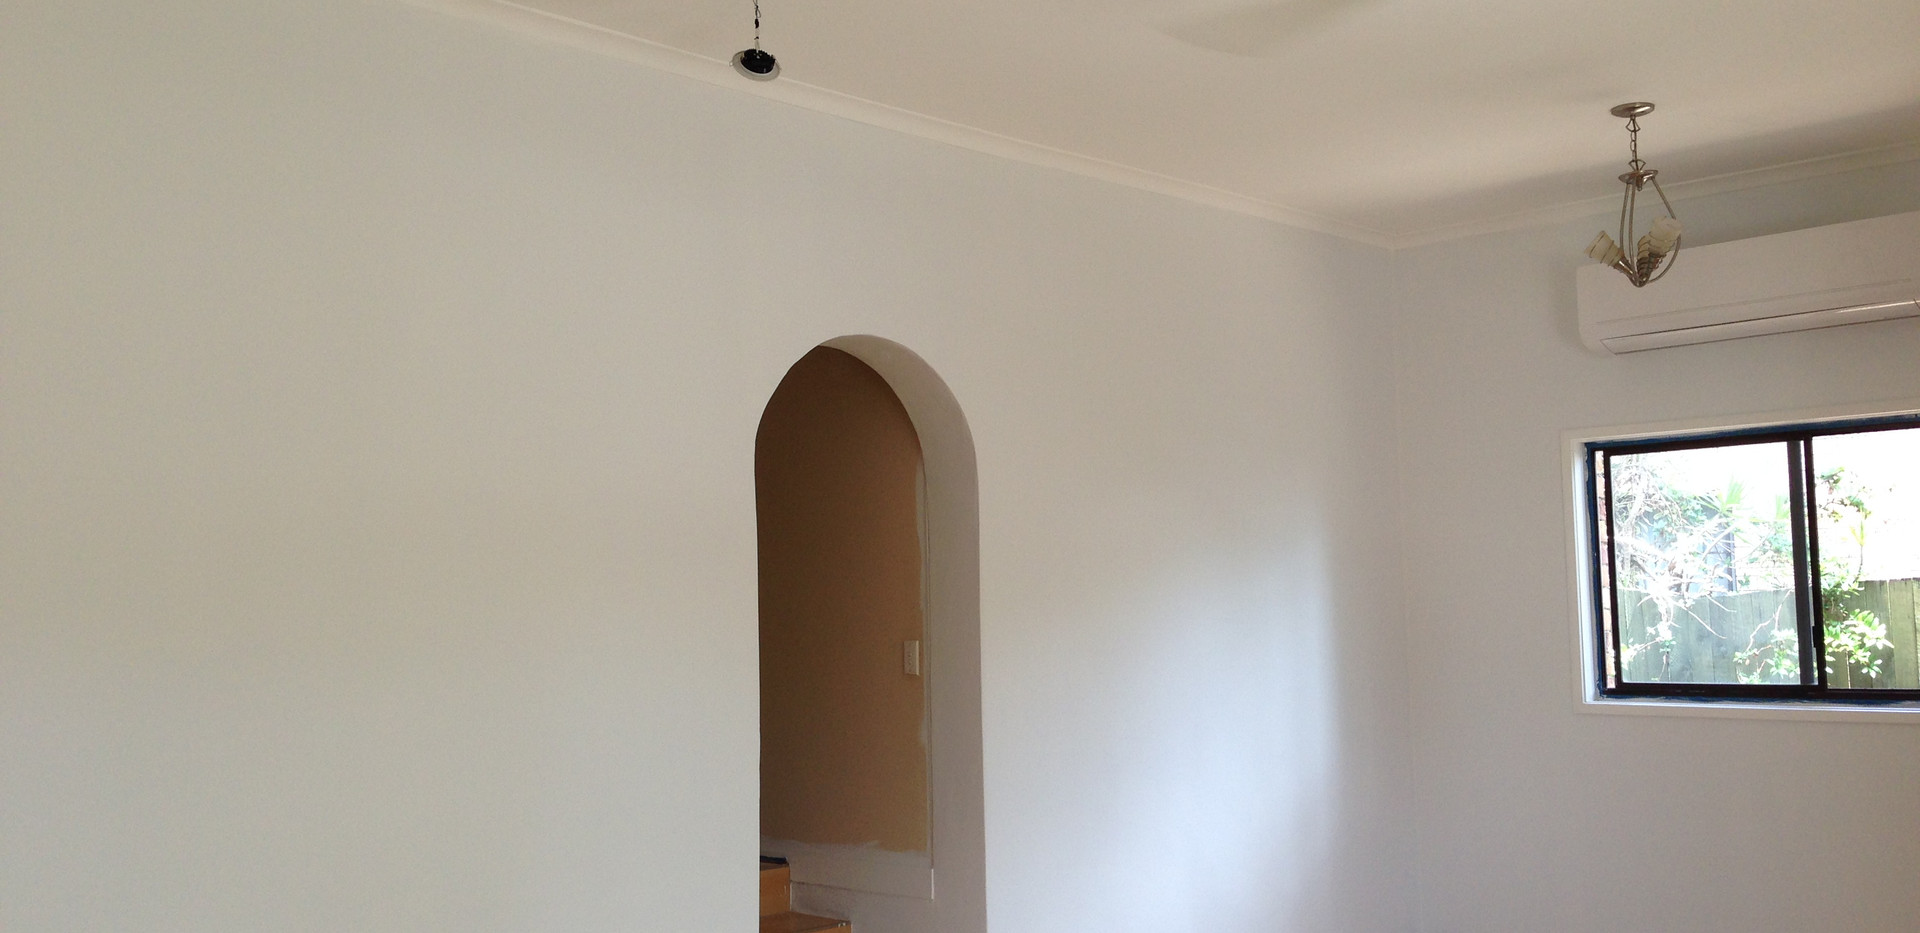 Wall Repair and Painting